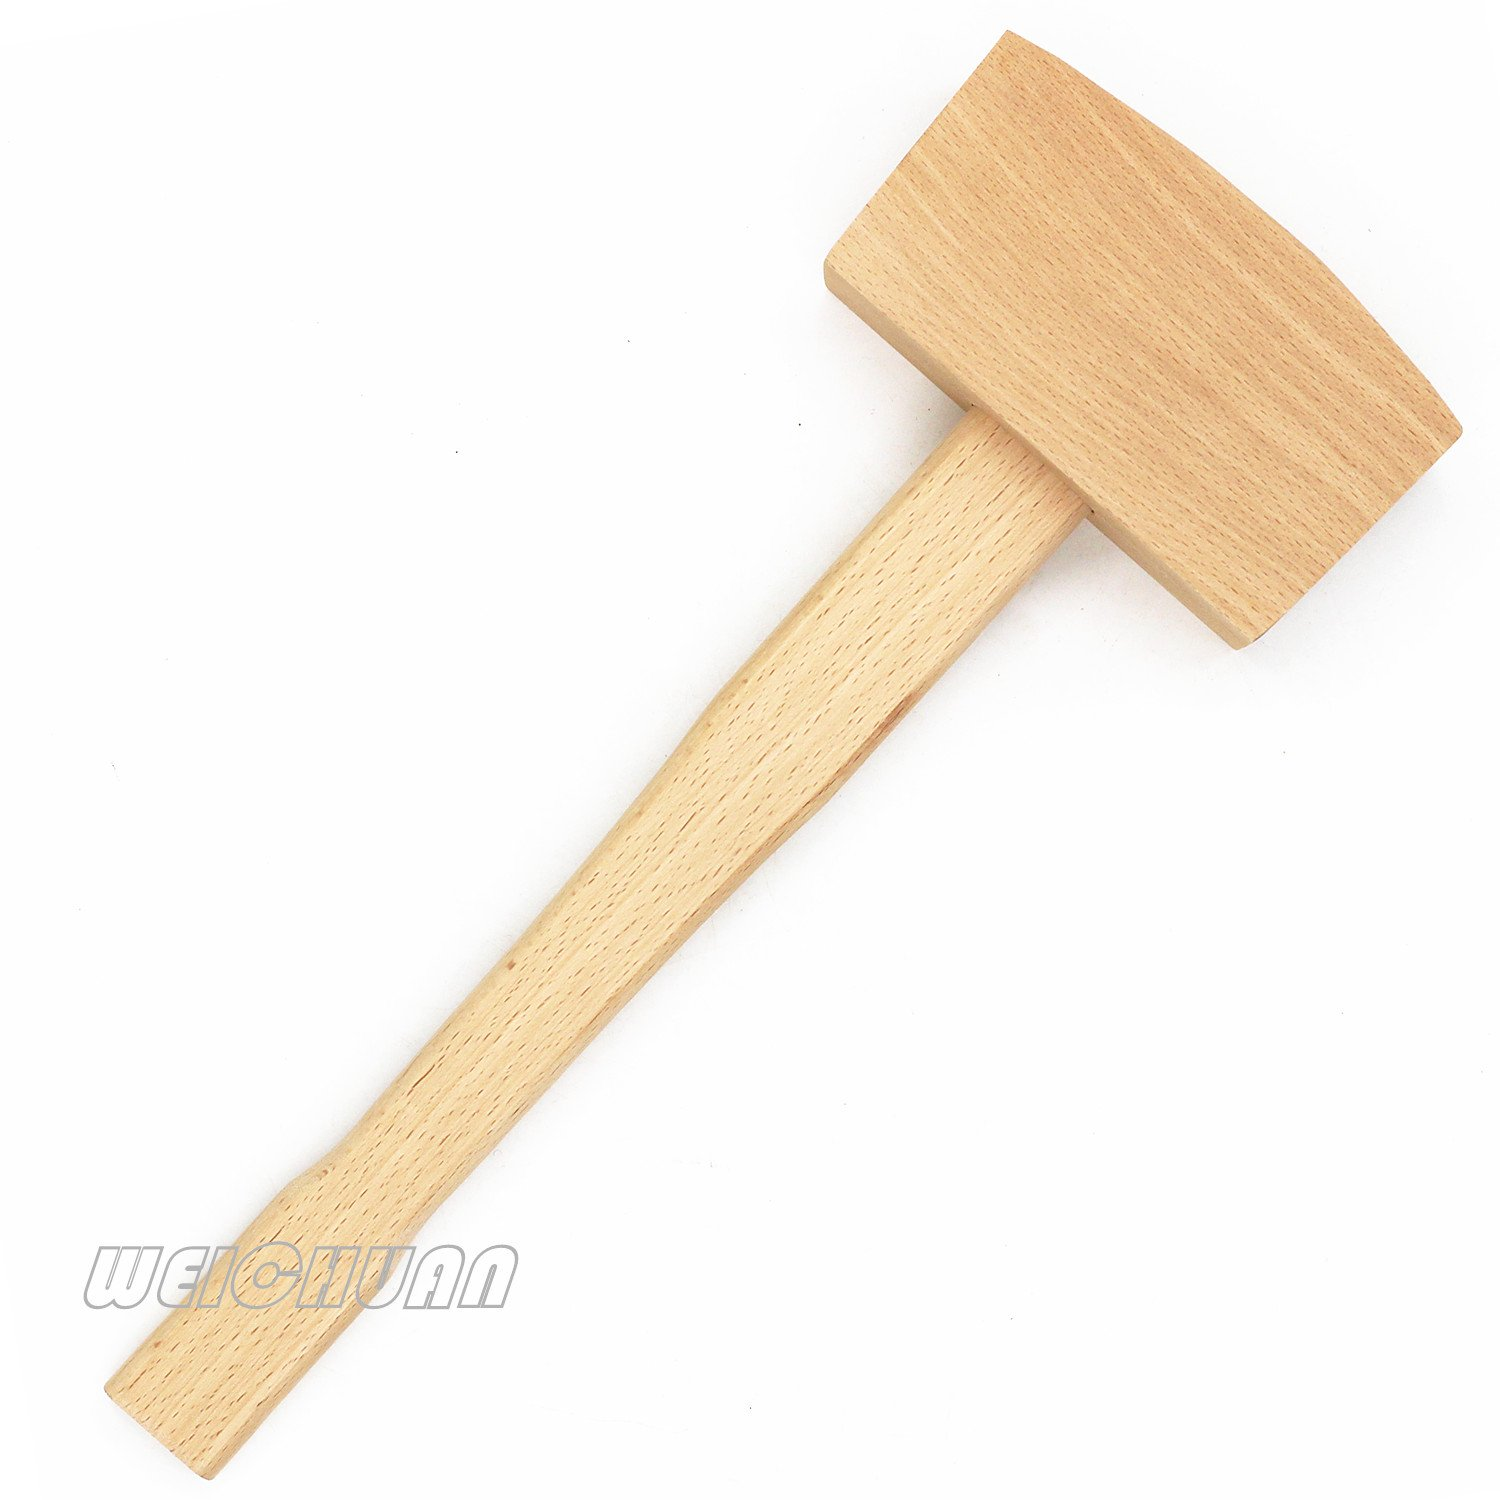 wood carving tools, Top 10 Wood Carving Mallets, Wood Carving Tools